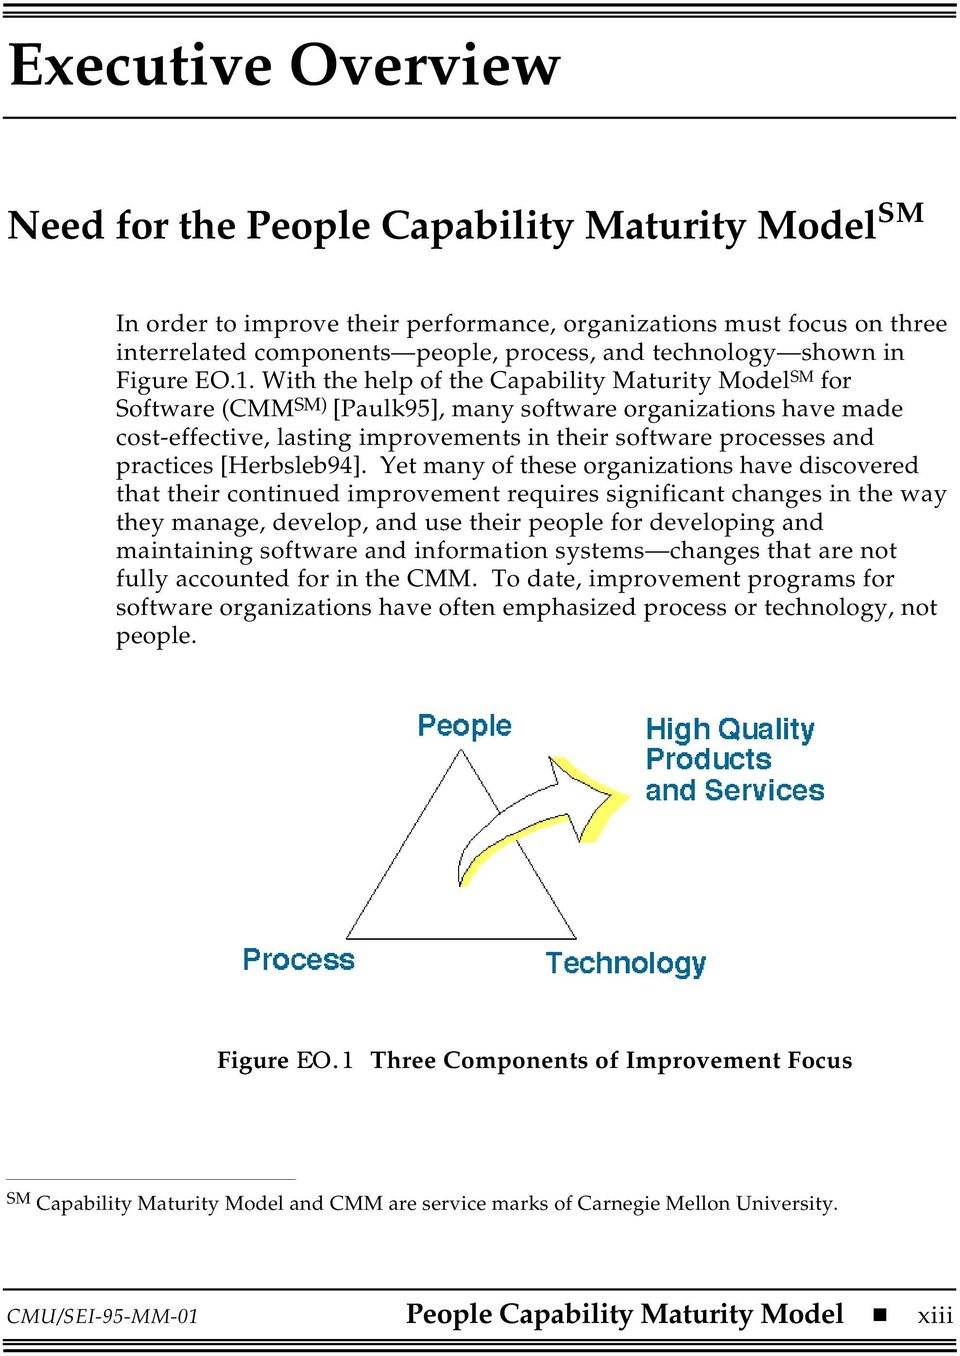 With the help of the Capability Maturity Model SM for Software (CMM SM) [Paulk95], many software organizations have made cost-effective, lasting improvements in their software processes and practices